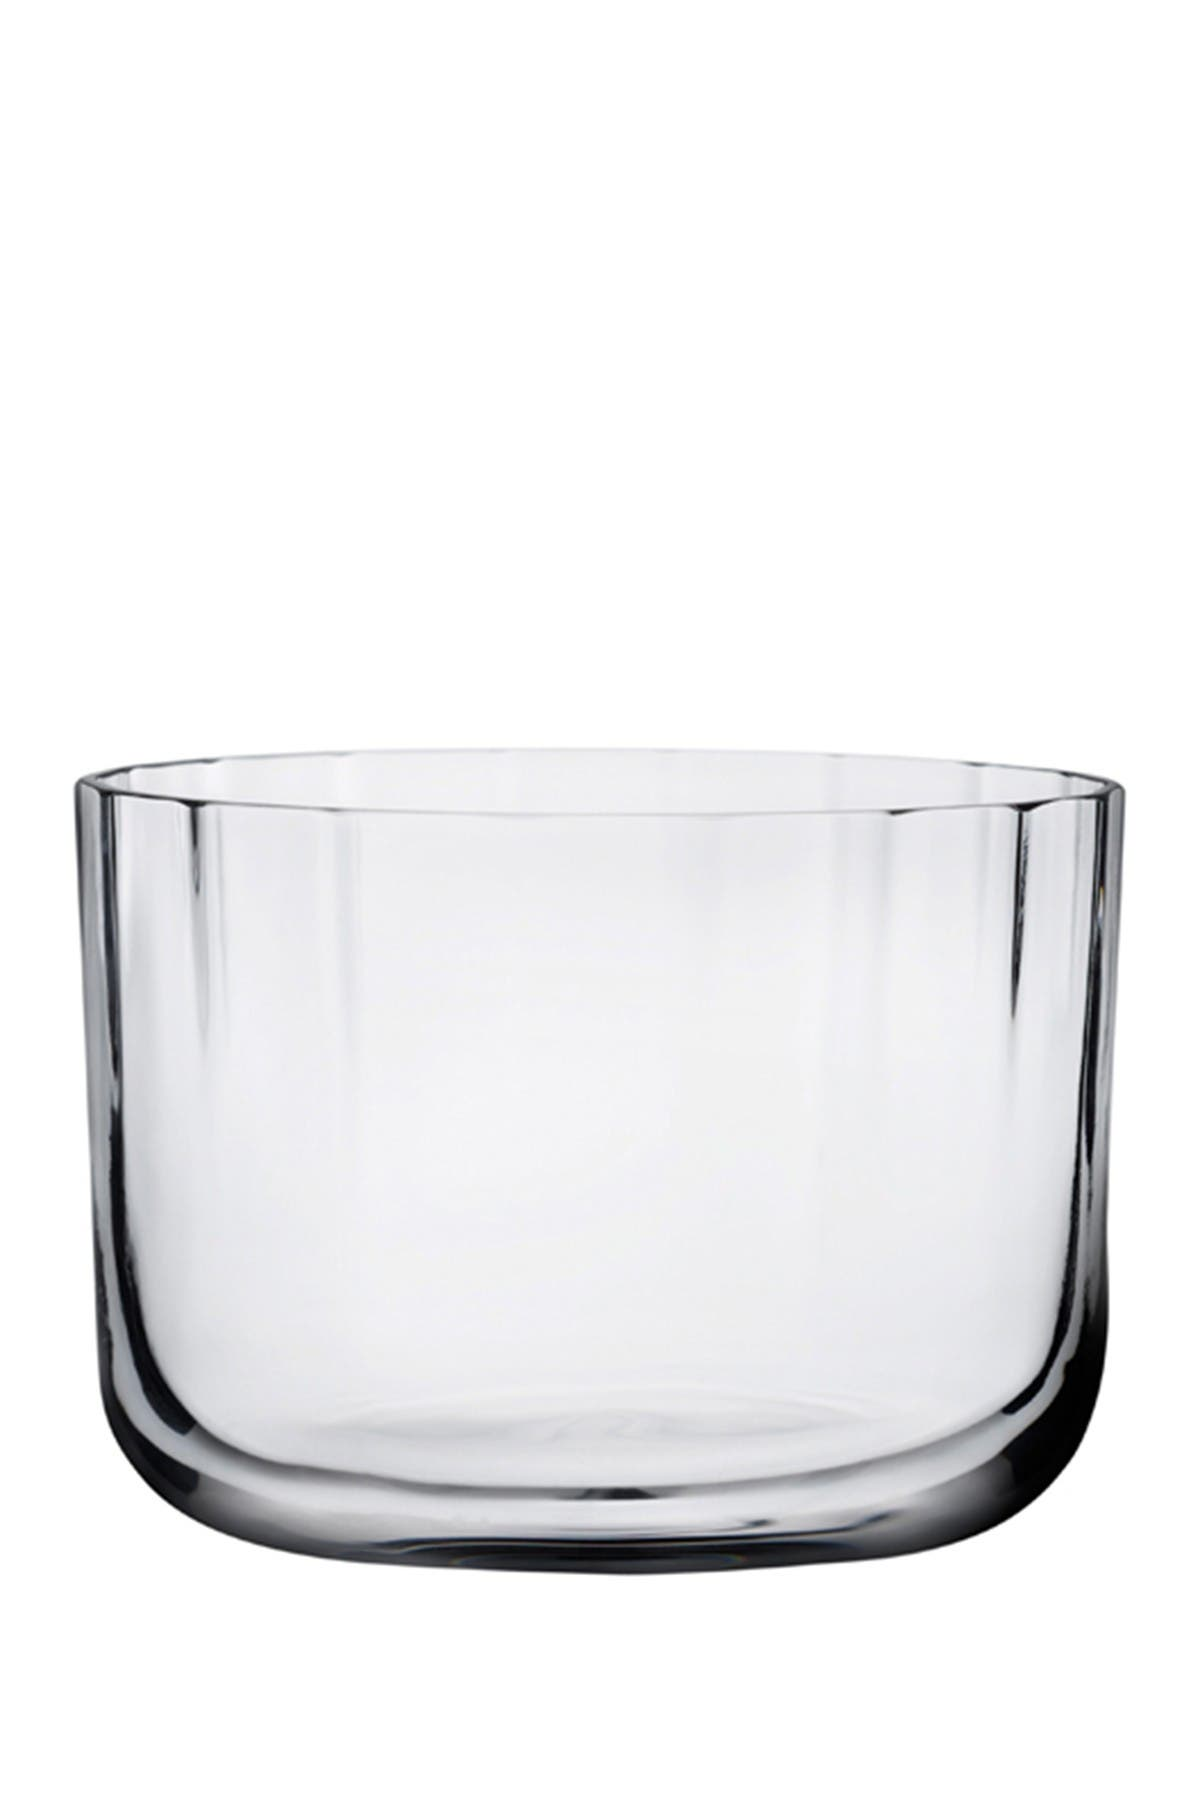 Image of Nude Glass Neo Bowls - Set of 2